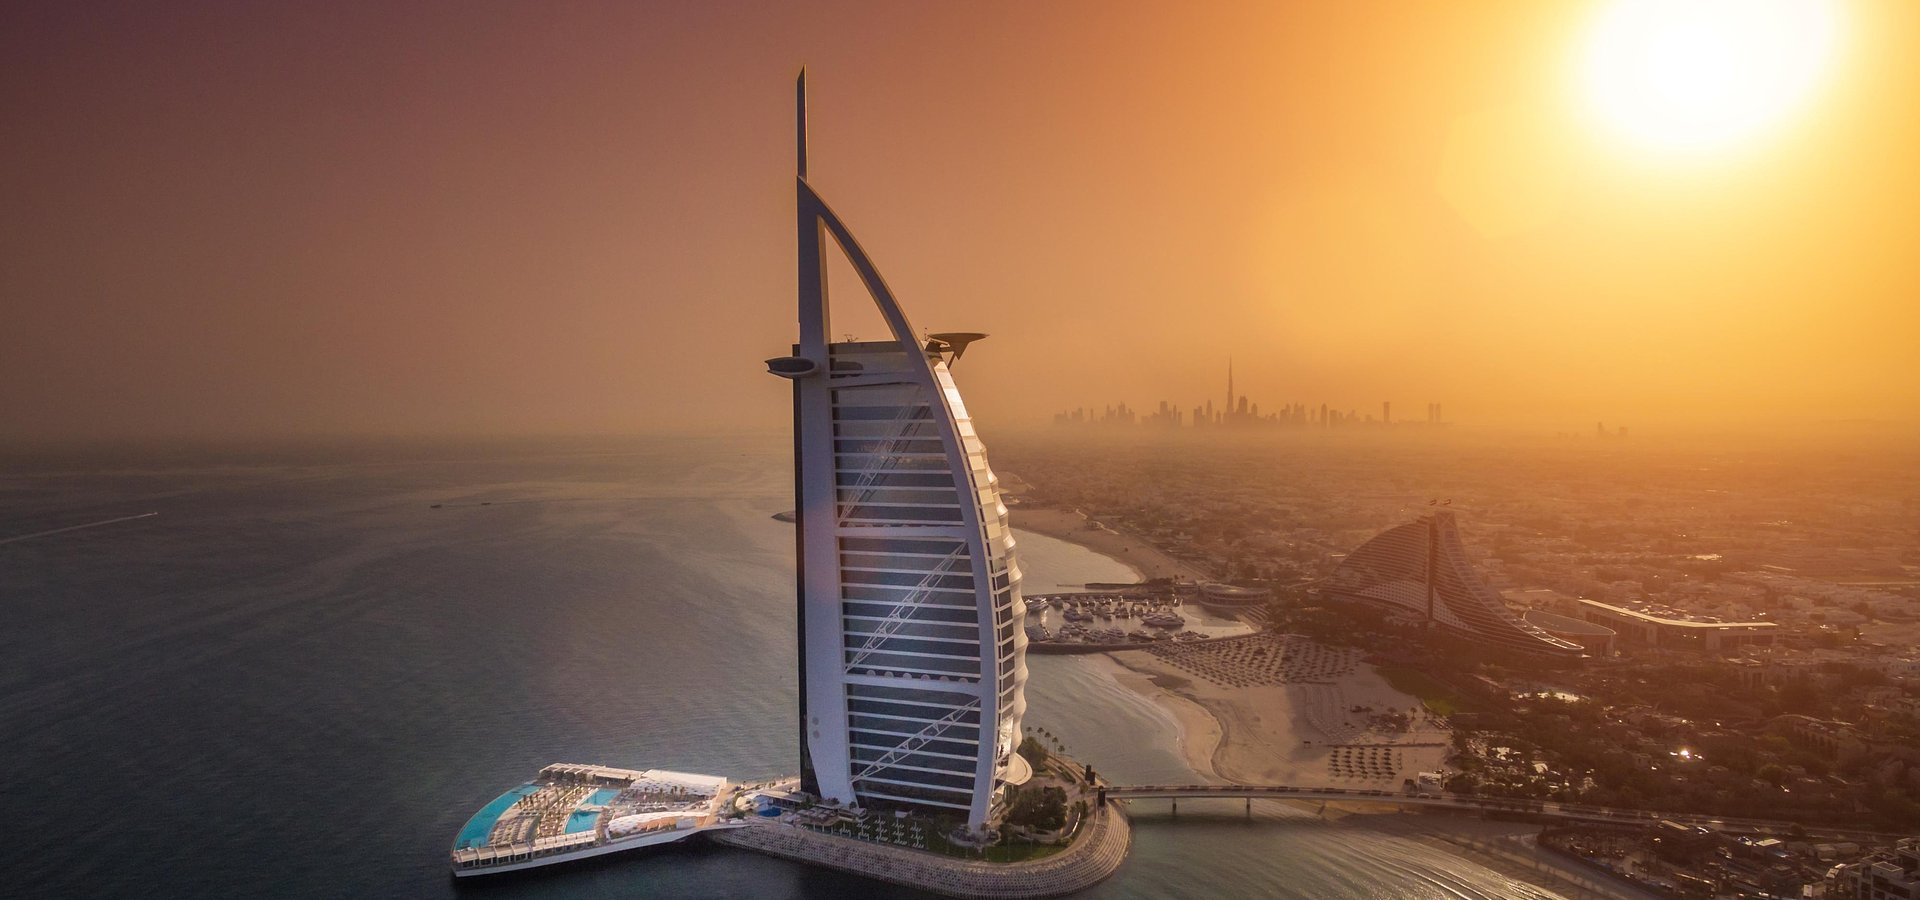 Leaving Dubai with debts? Prepare properly, expats warned.